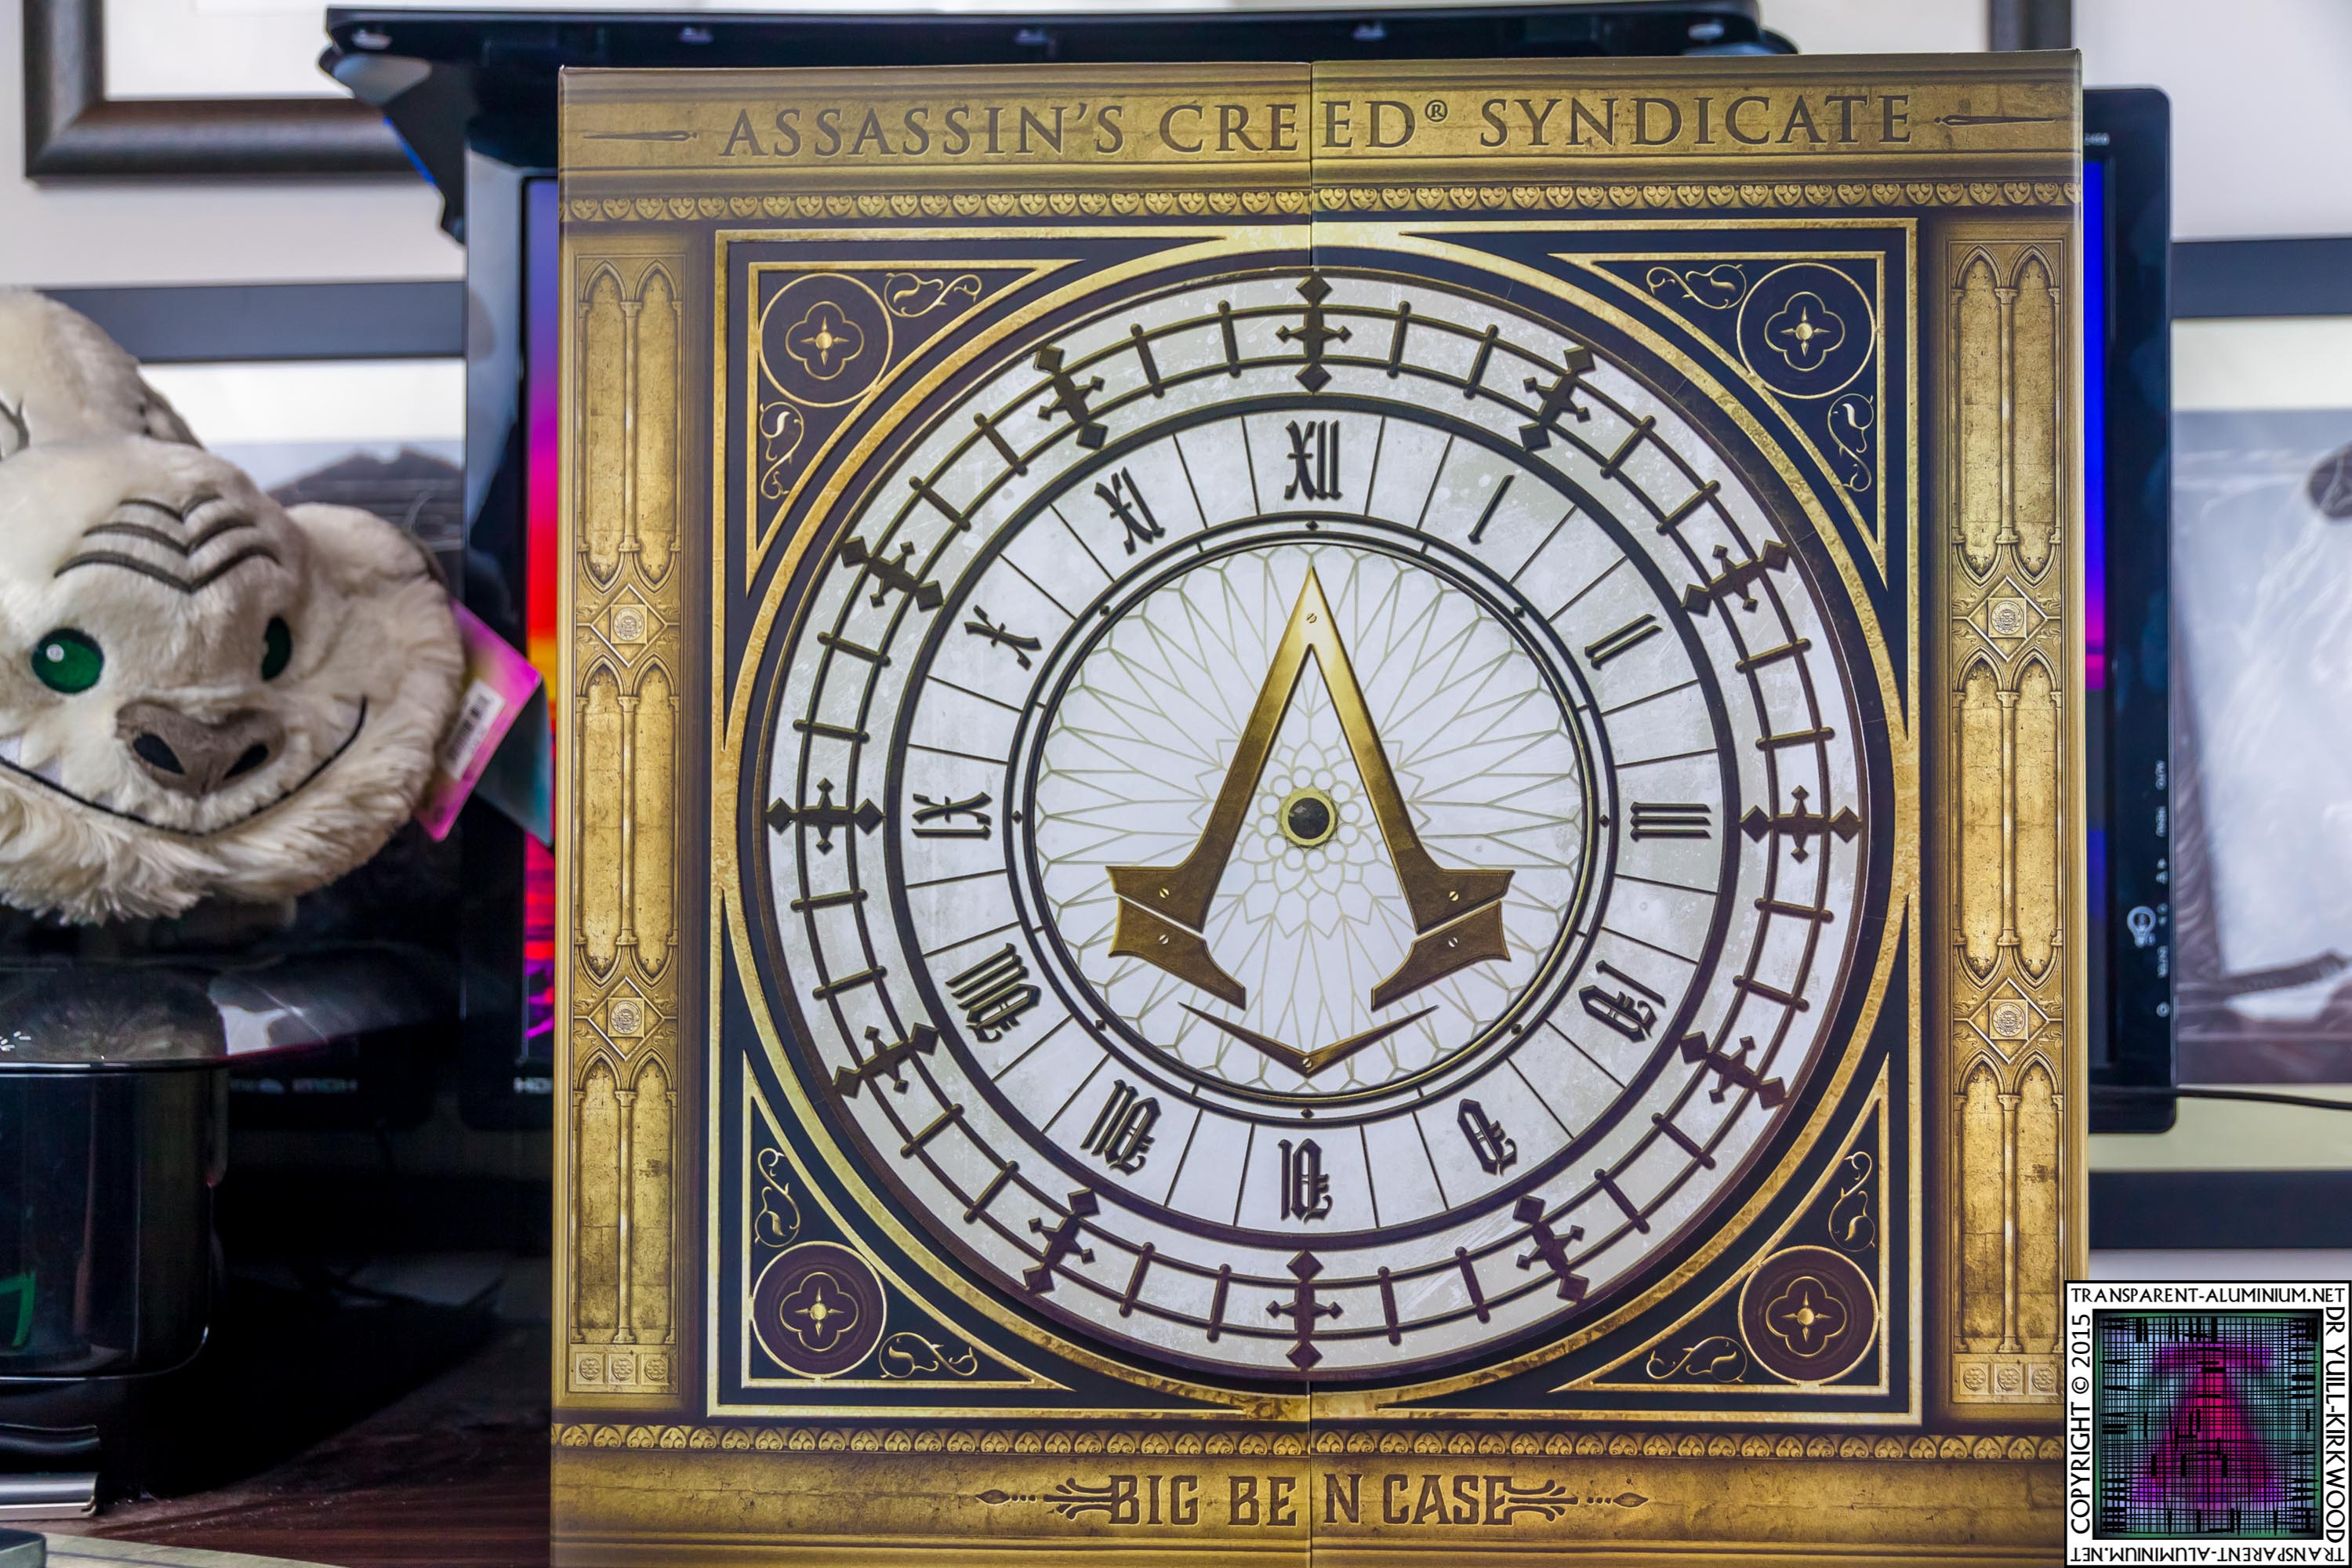 Assassin's Creed Syndicate - Big Ben Collector's Case Box Art (1).jpg